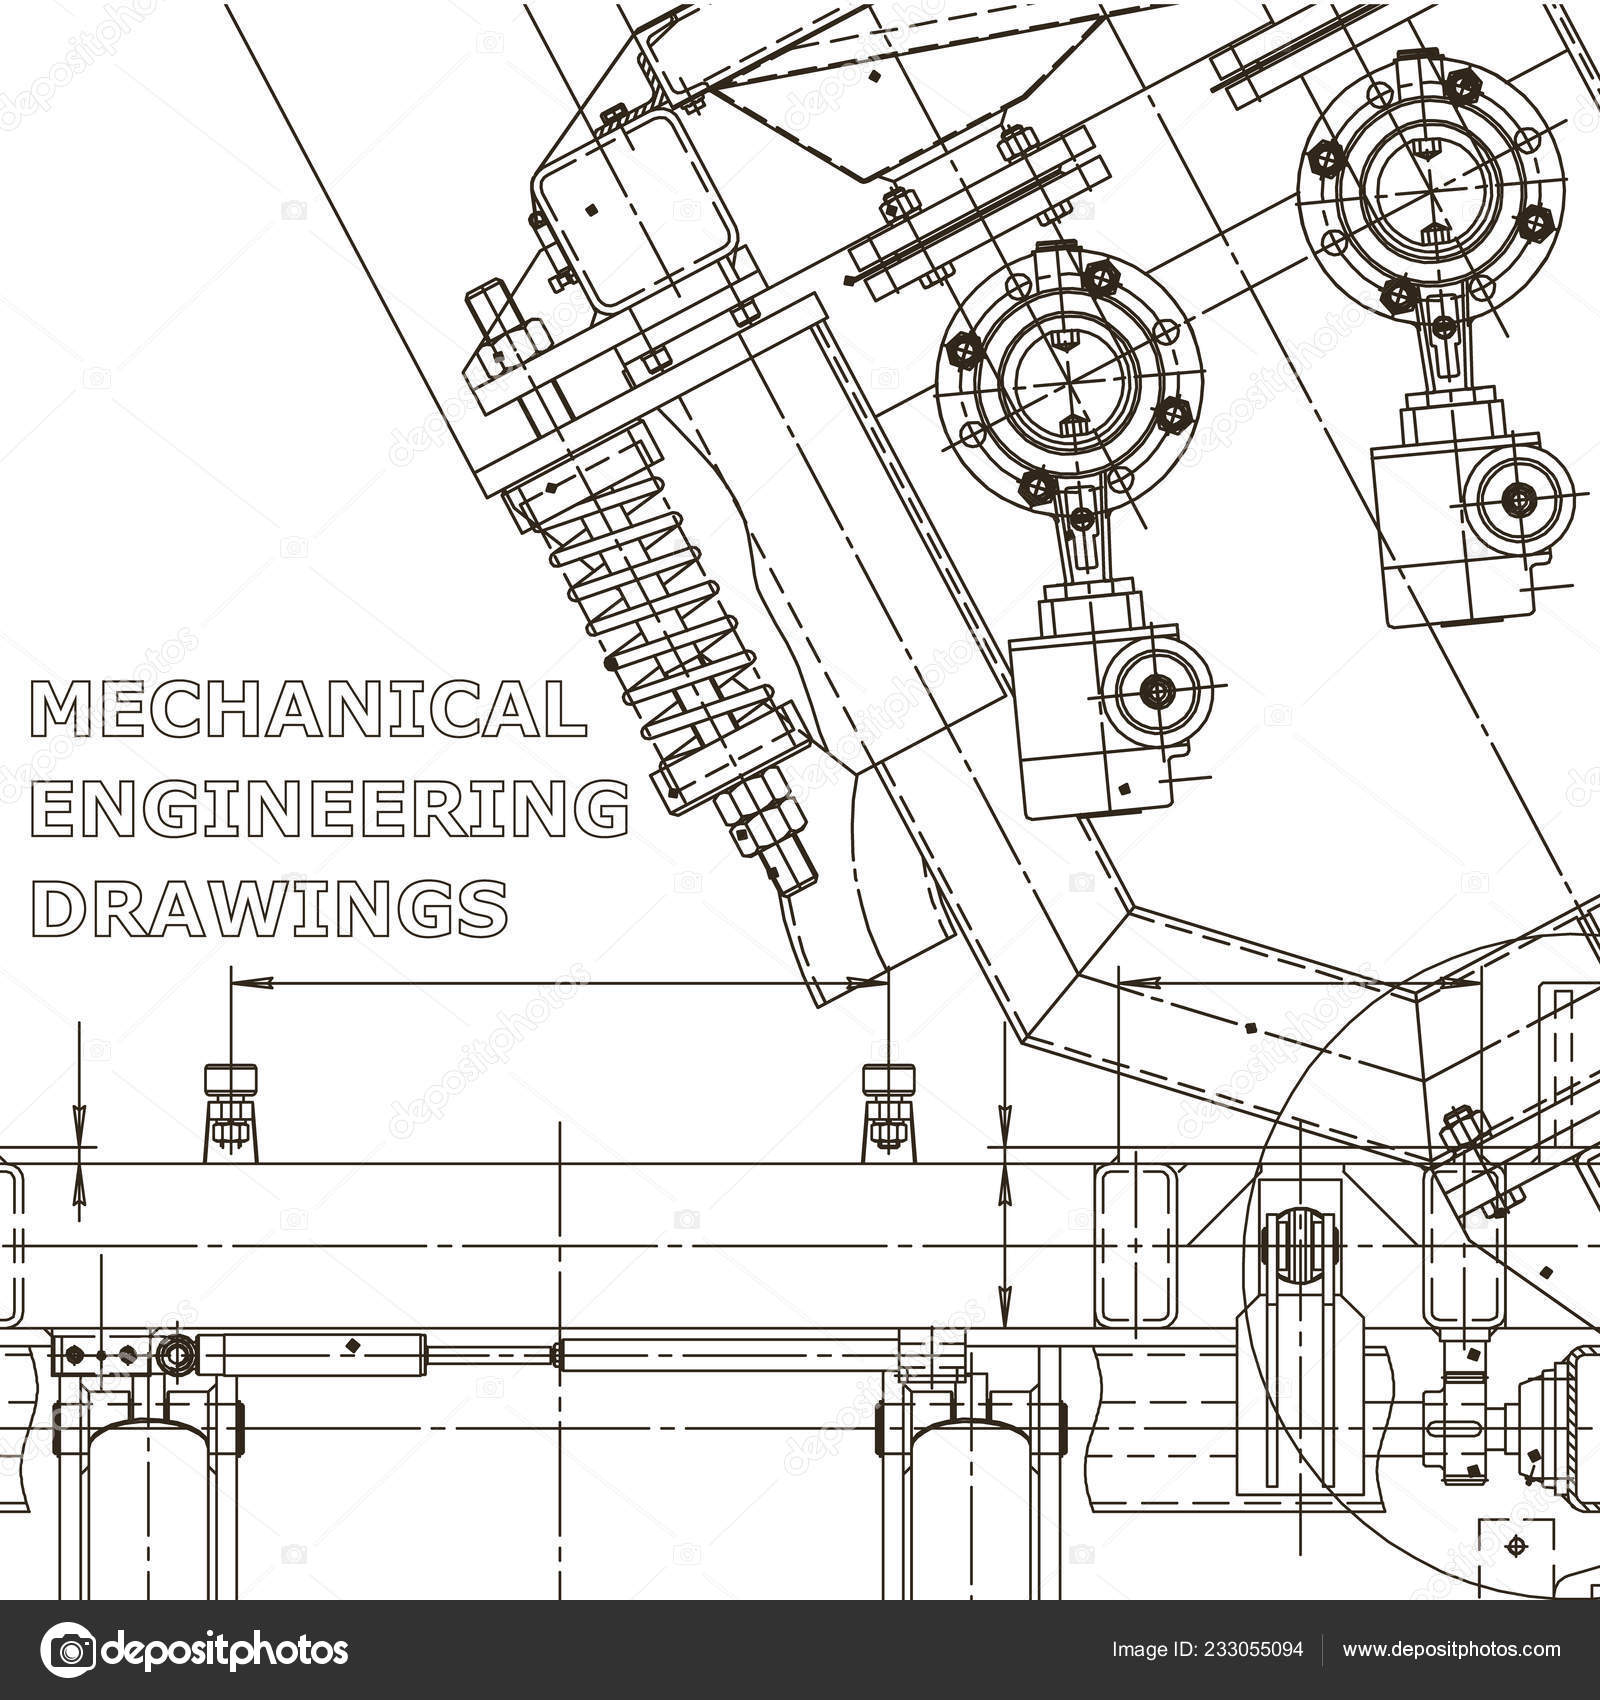 hight resolution of computer aided design systems instrument making drawings blueprint diagram plan sketch vector by bubushonok